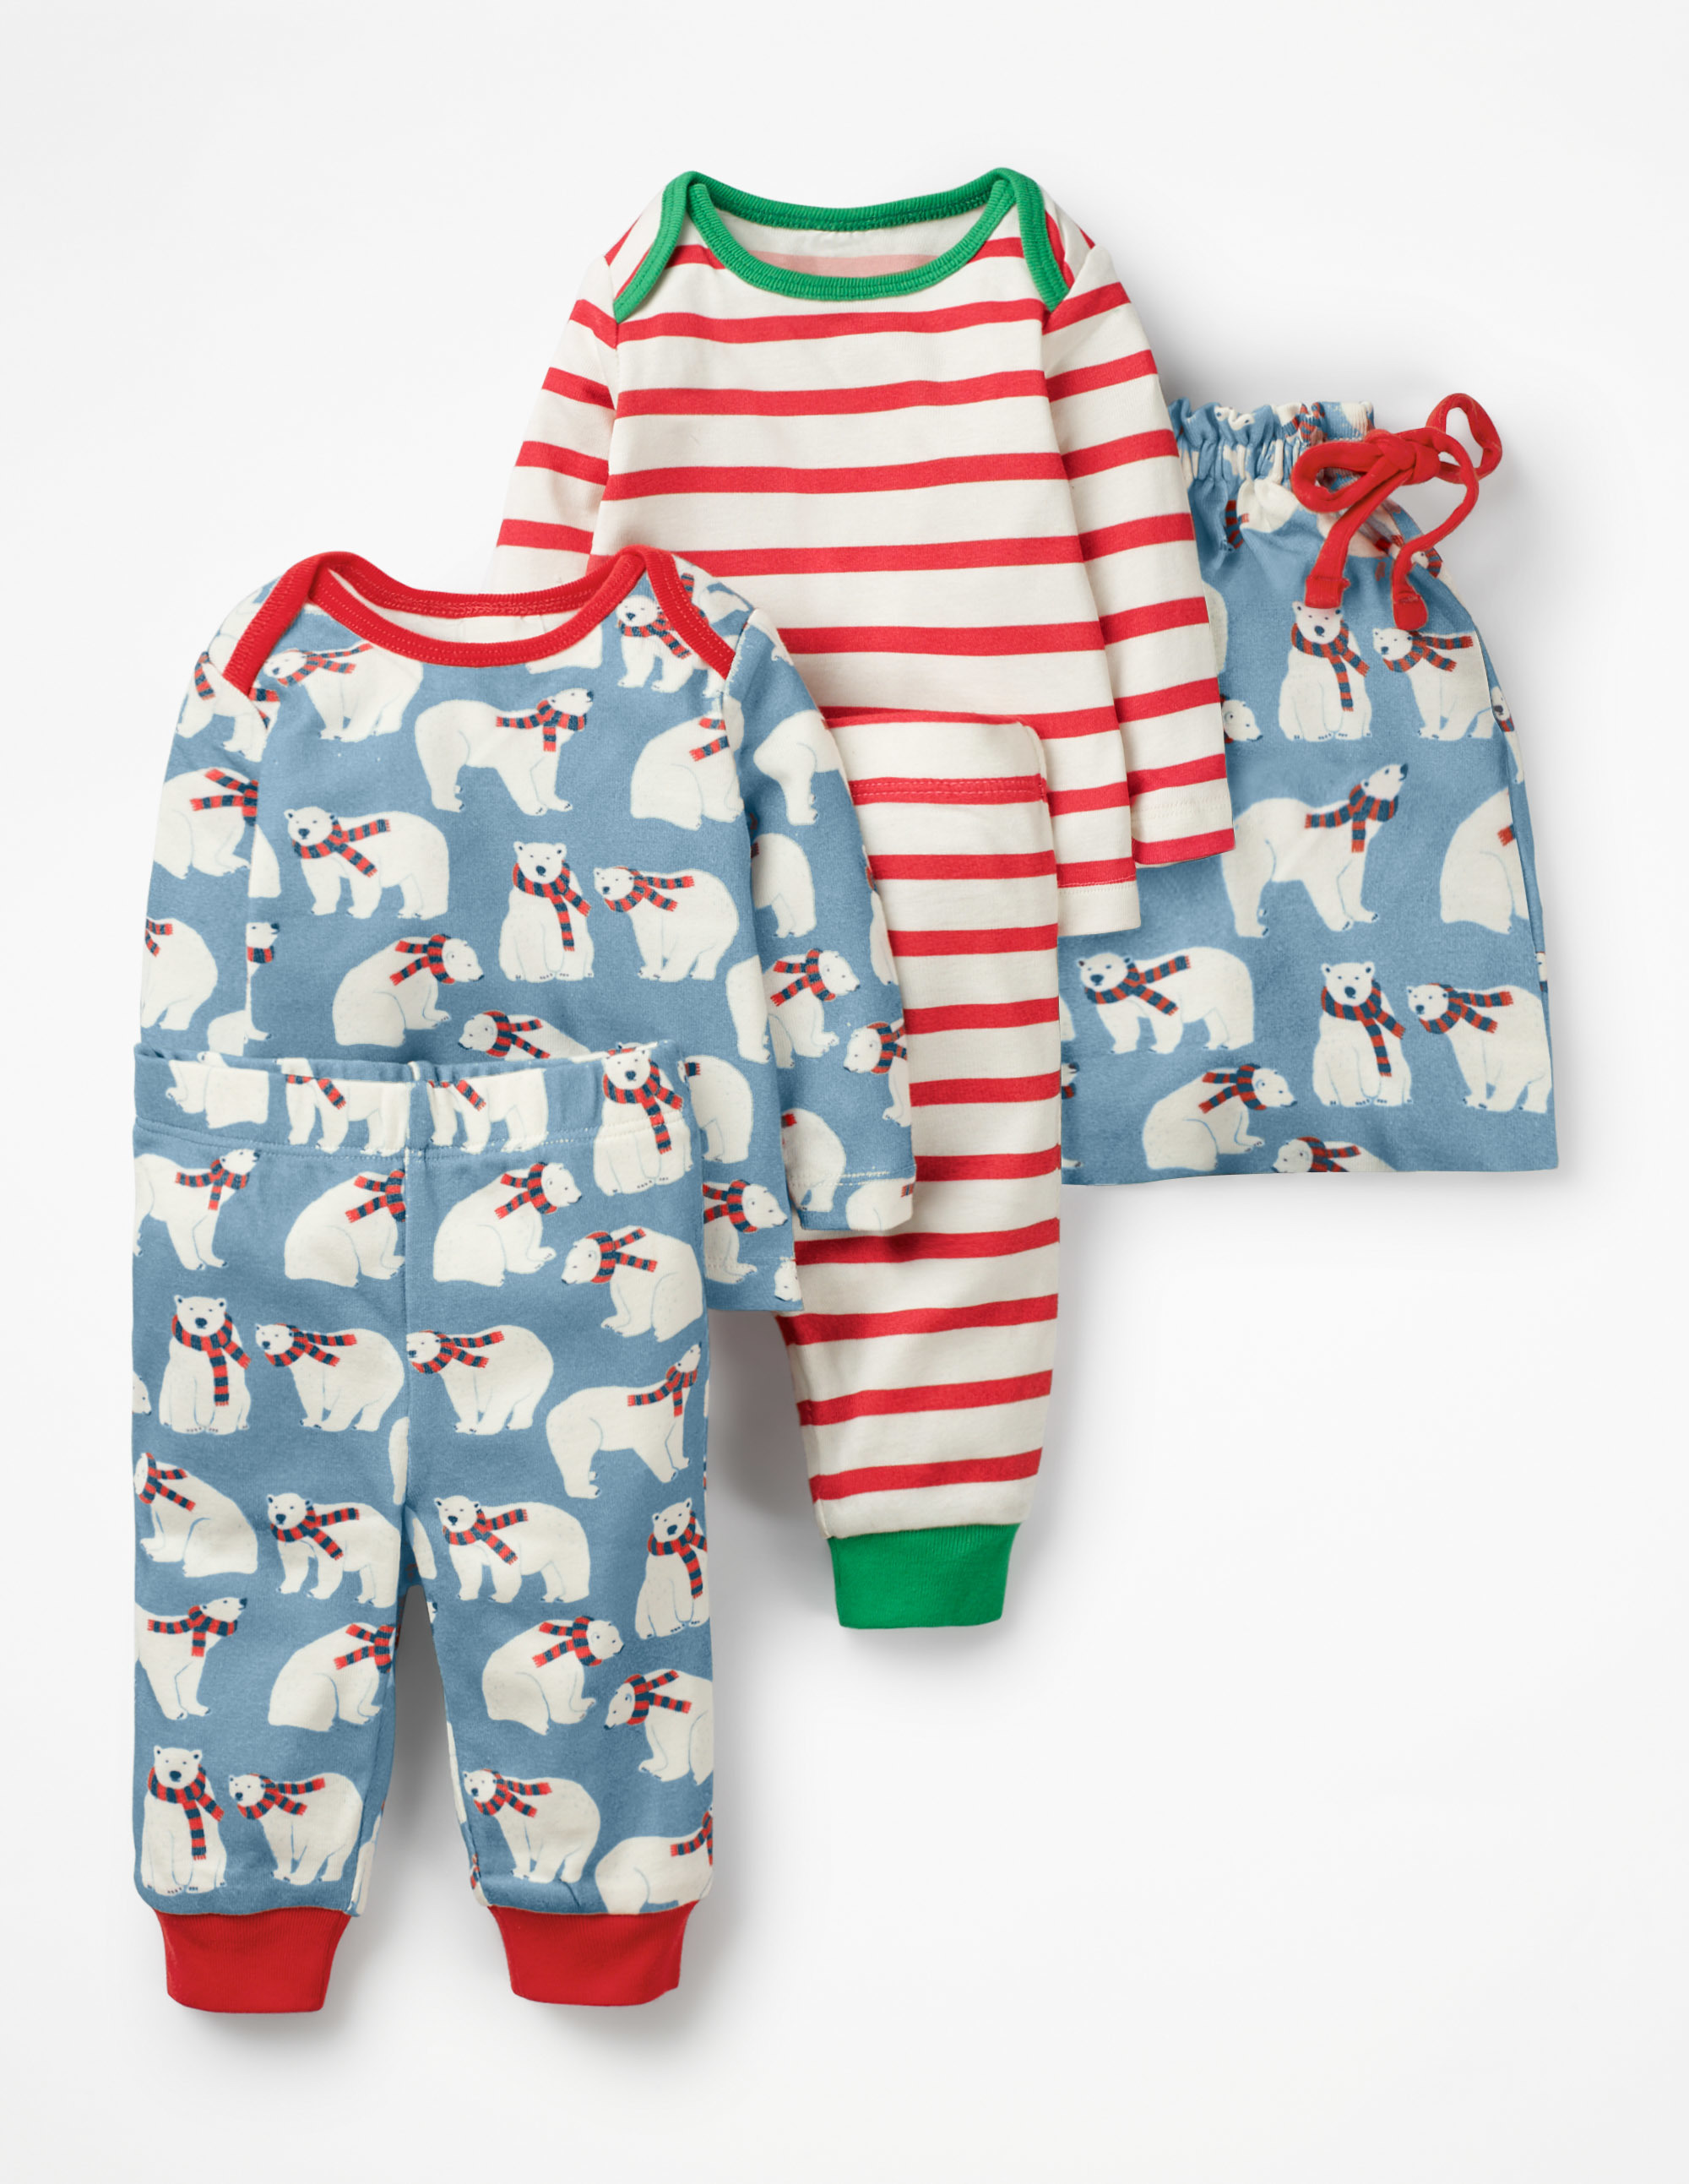 5e739f8bb Holiday Pajamas for the Entire Family - Katie Considers